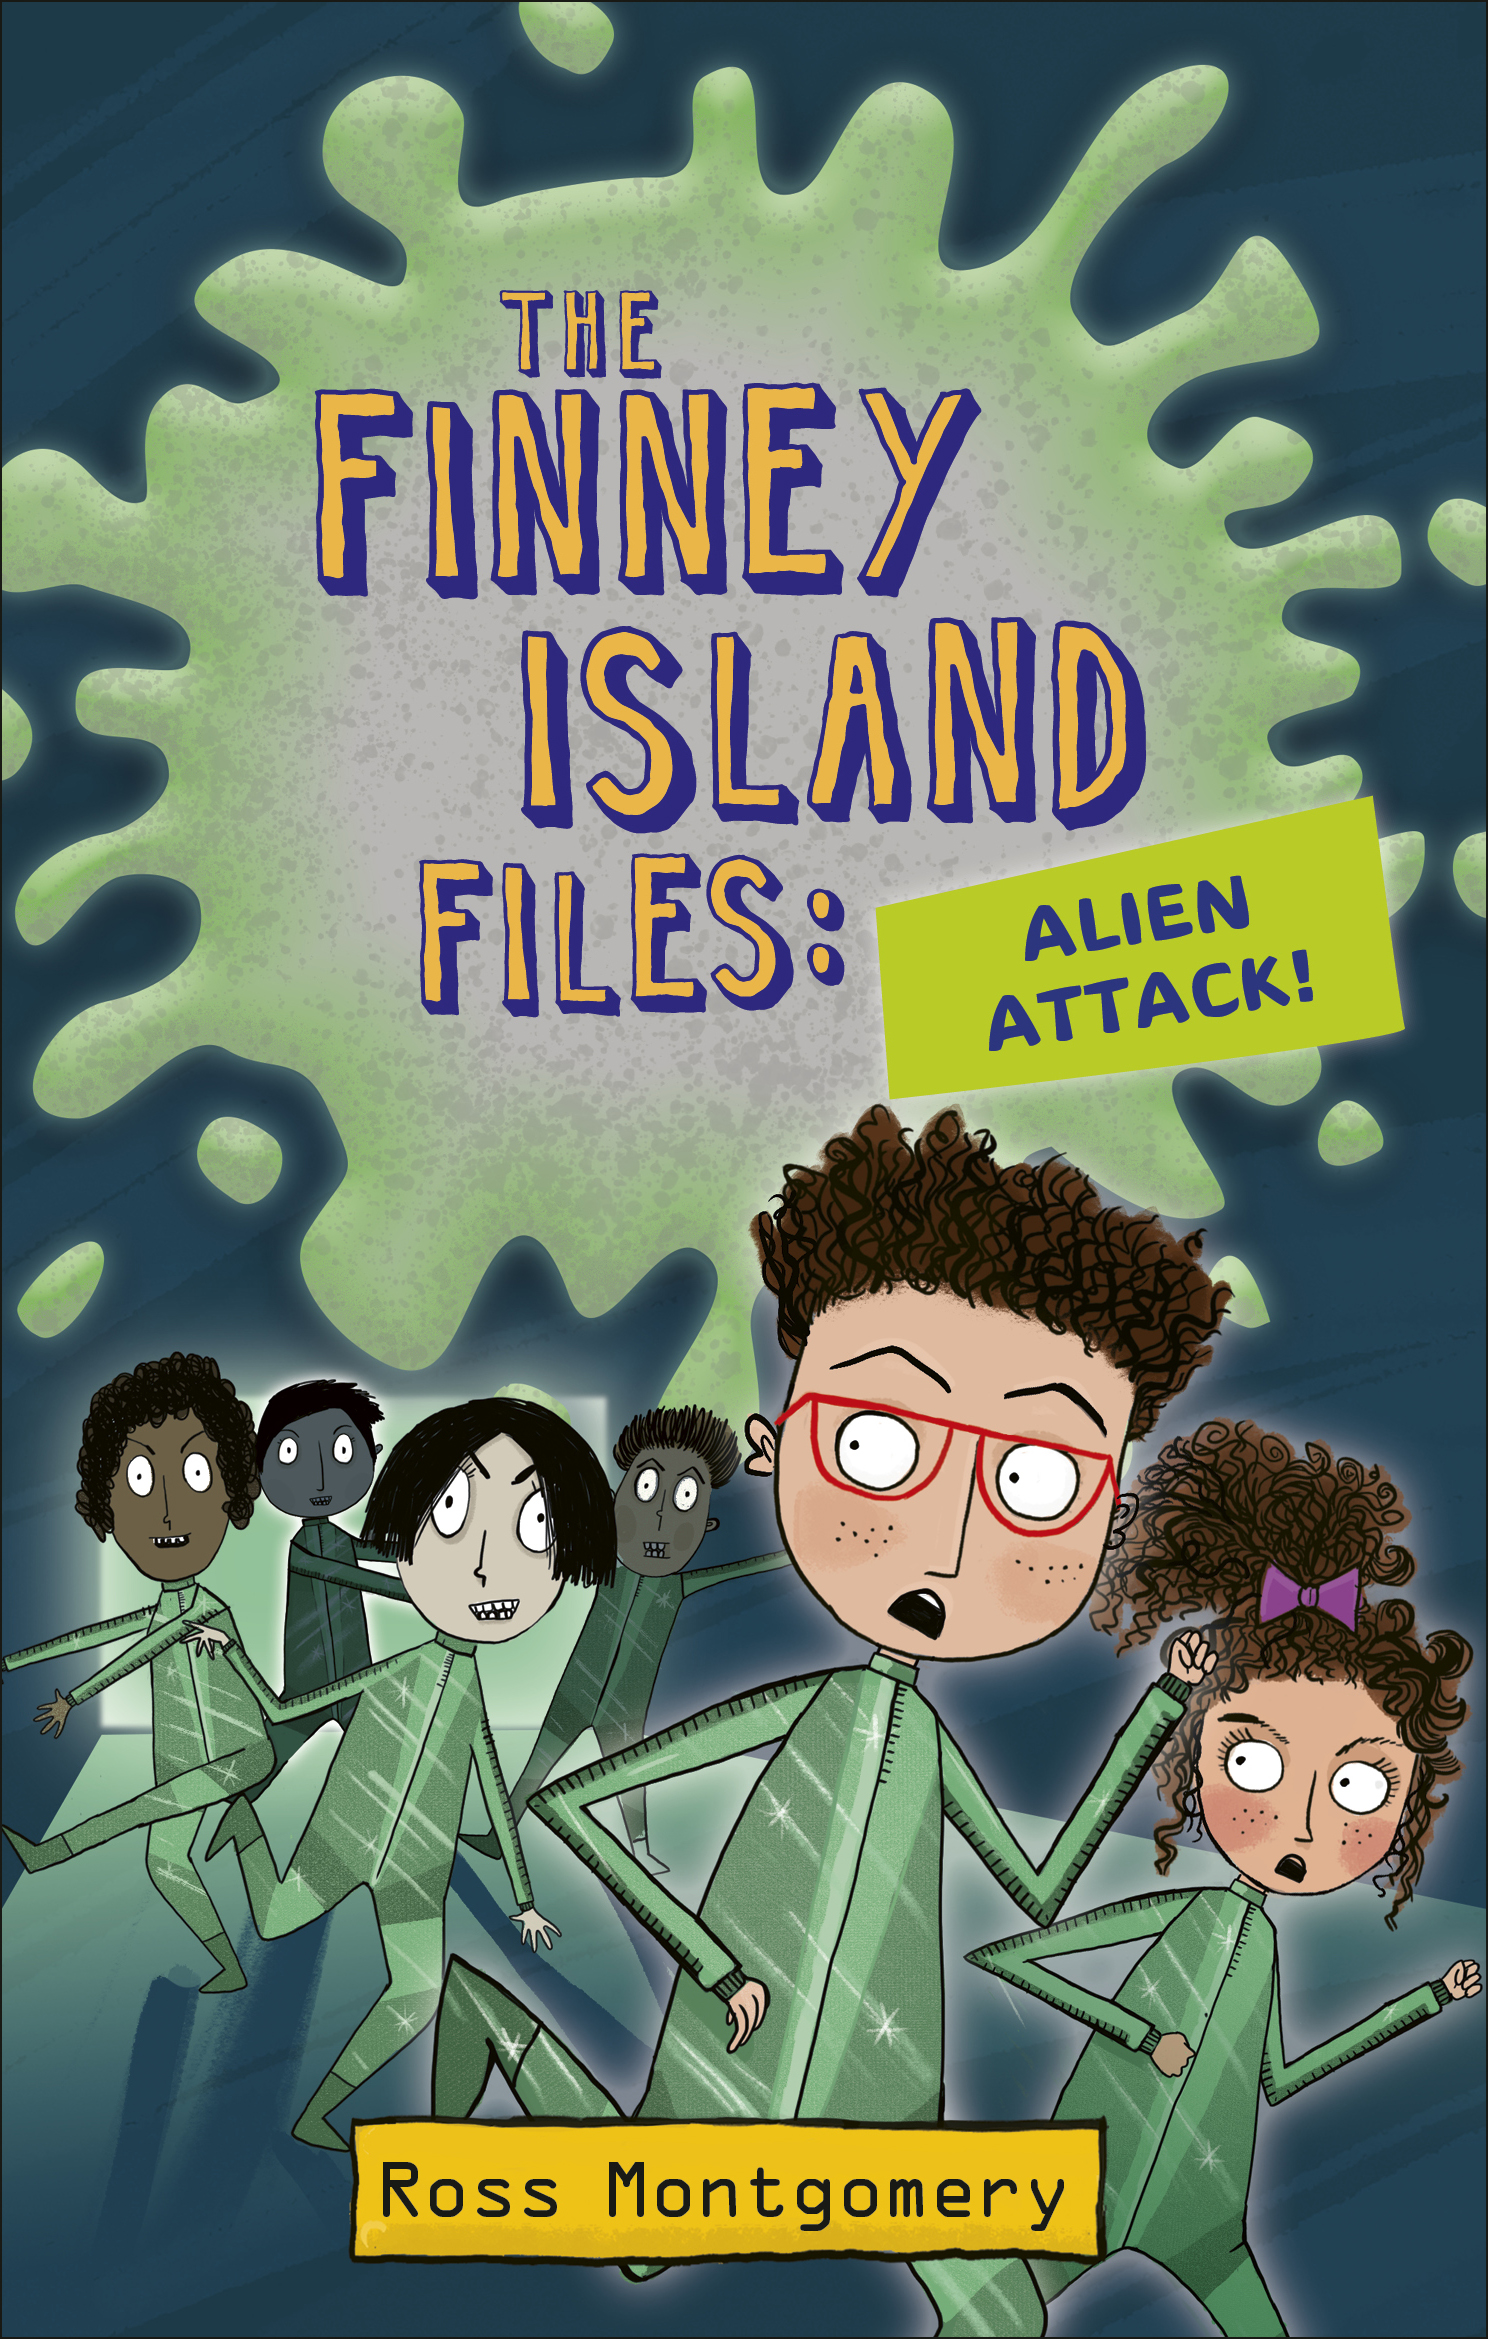 The Finney Island Files 4: Alien Attack!